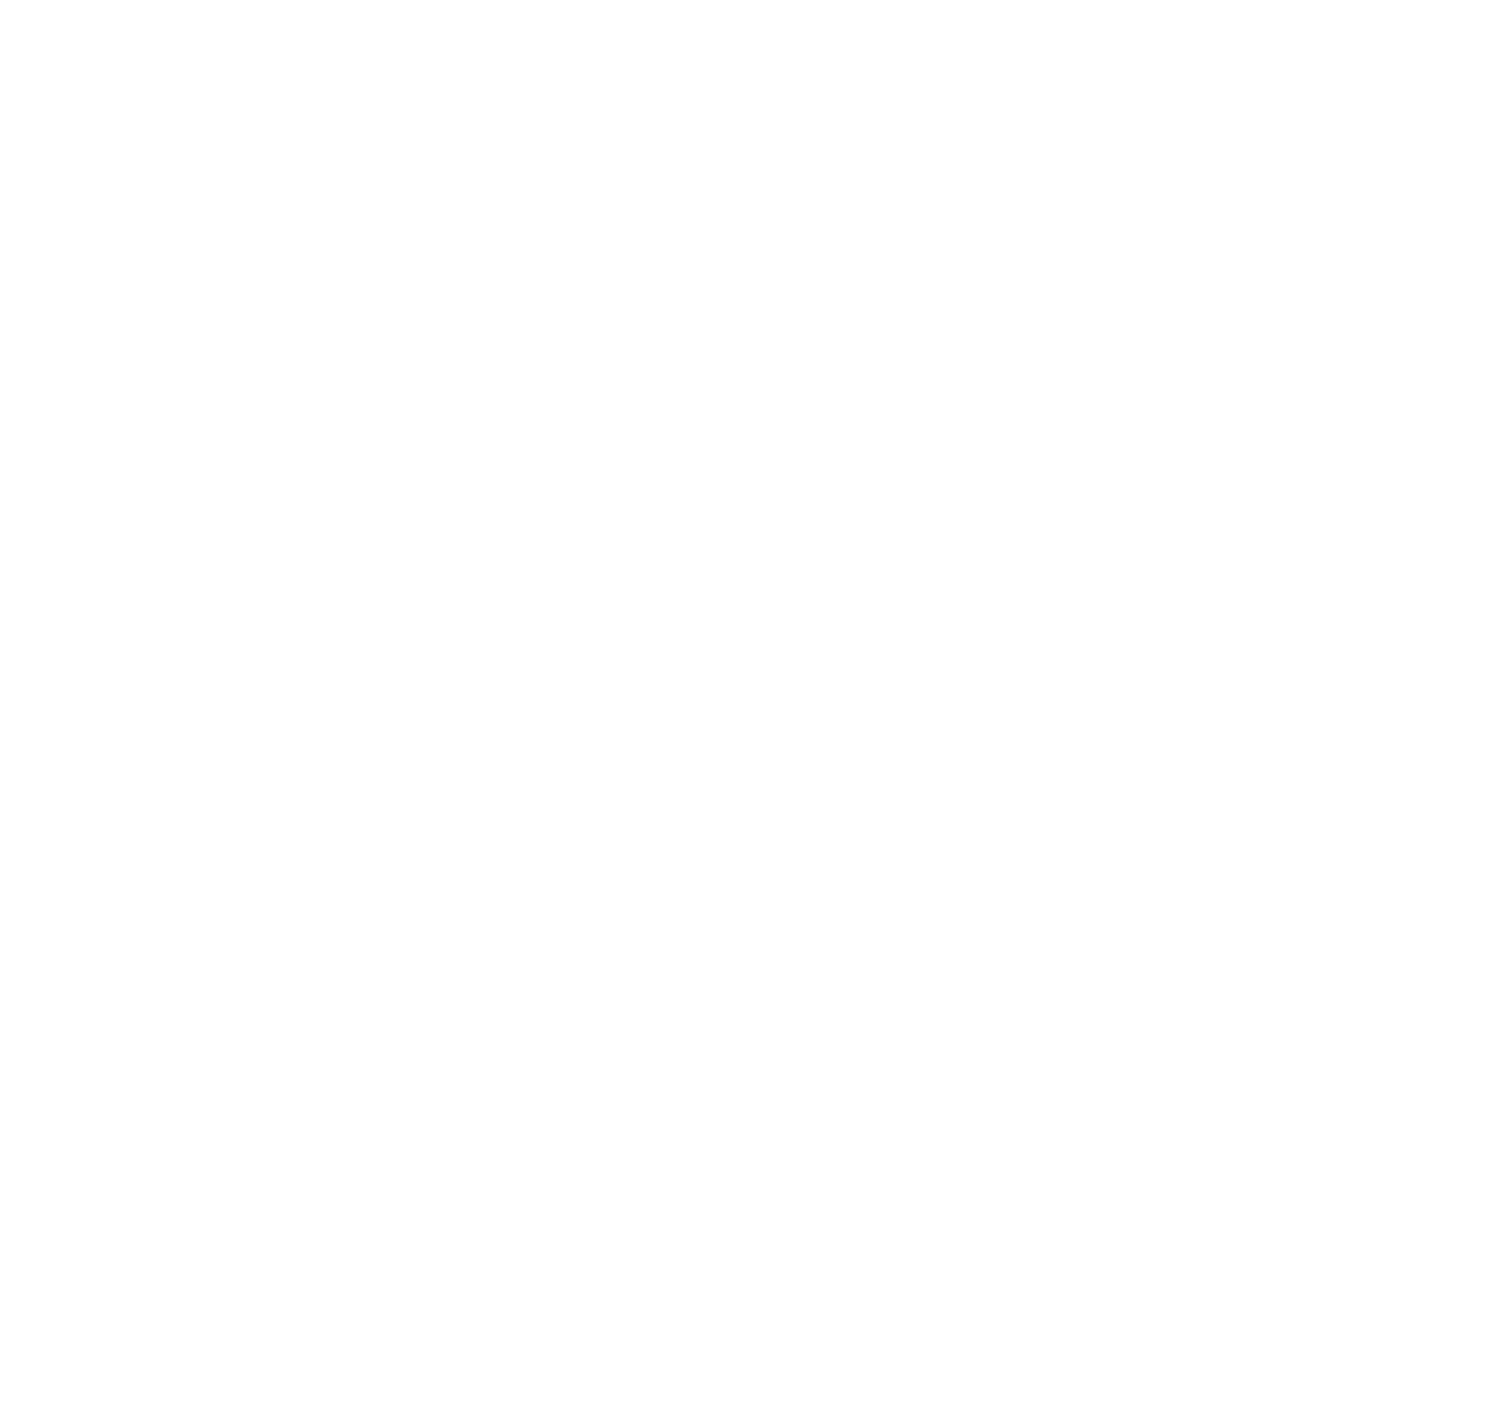 Father's House International